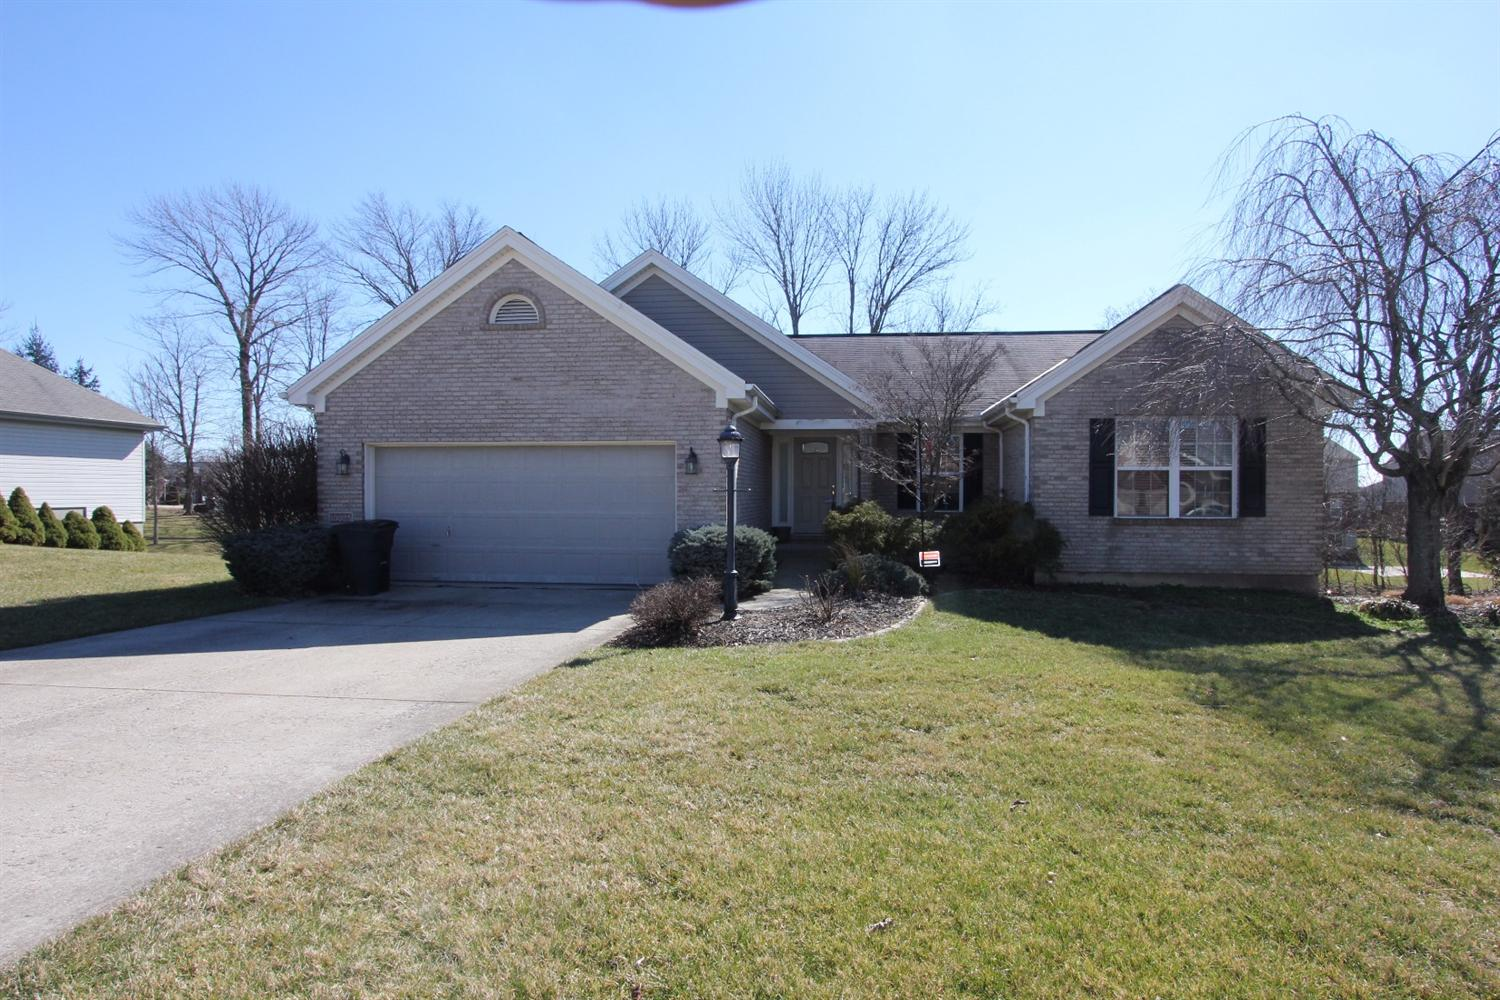 Photo 1 for 10025 Braxton Dr Union, KY 41091